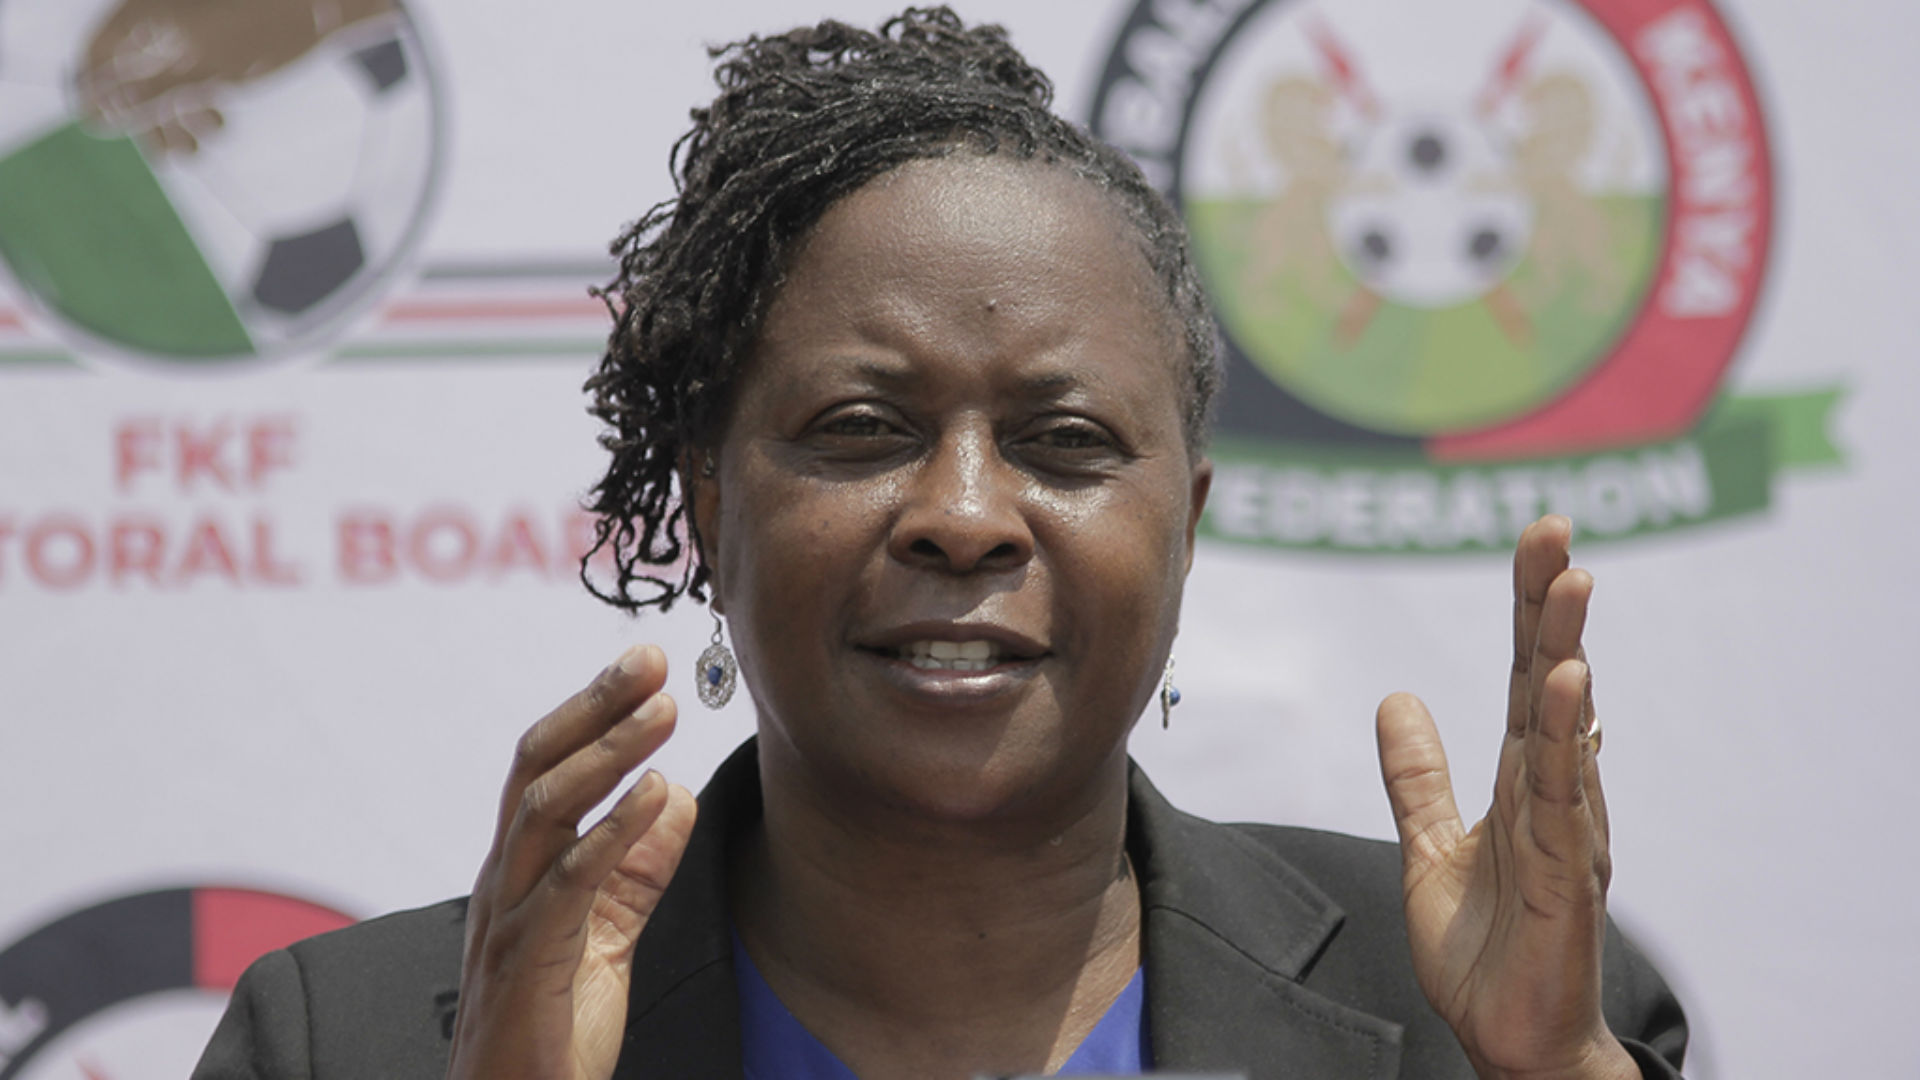 FKF Elections: Board welcomes disputes on nomination process